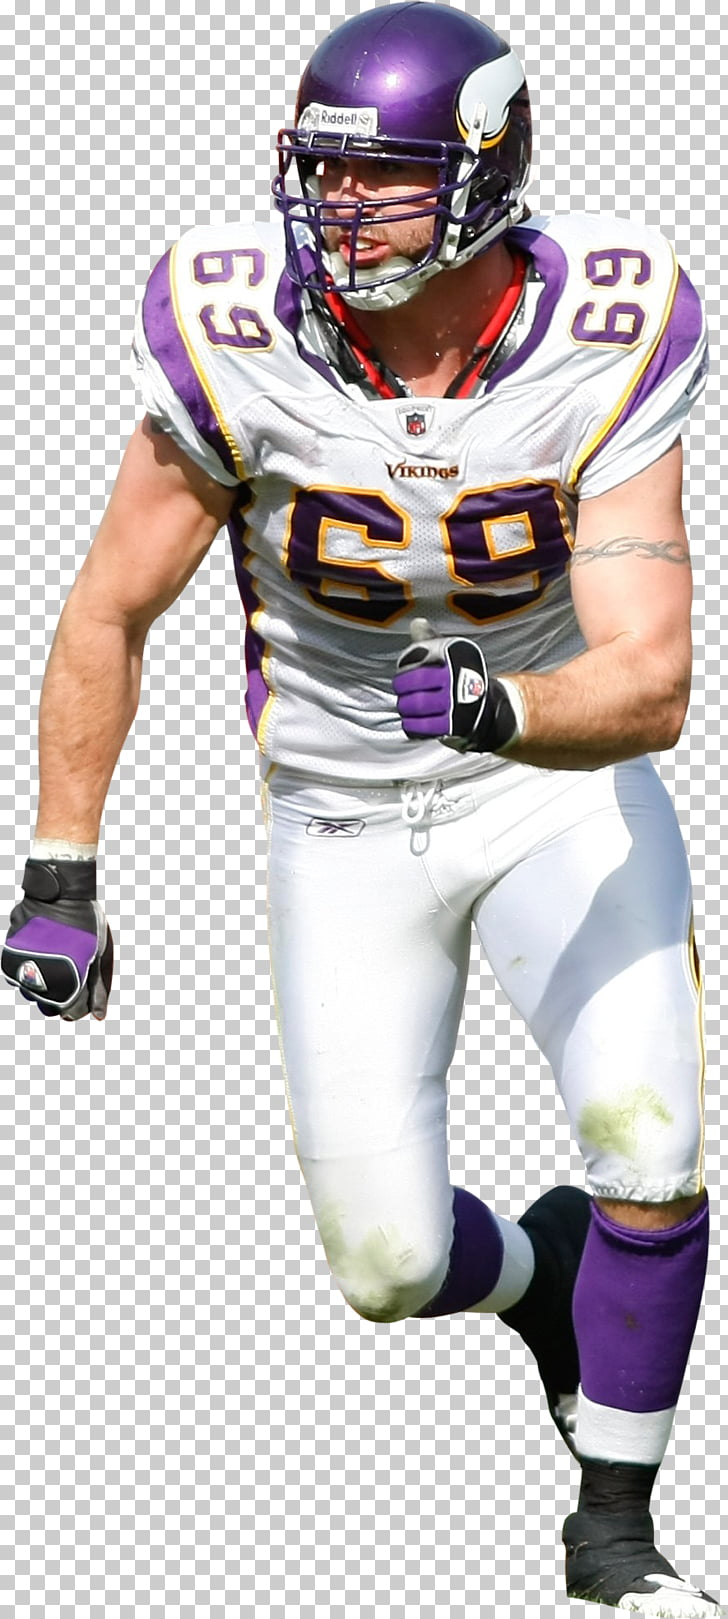 medium resolution of nfl united states american football player american football player man wearing white and purple